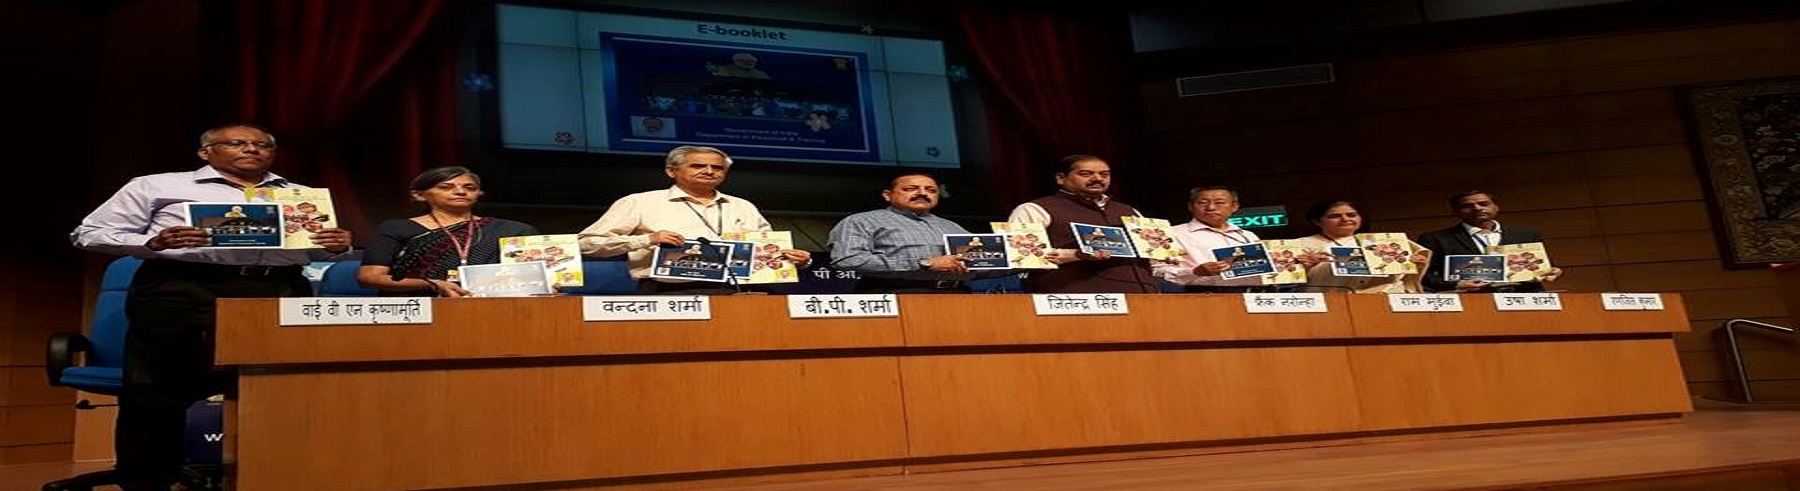 Launching of e-booklet of DoPT by Dr. Jitendra Singh, Hon'ble MoS (PP) on 23.05.2017 at National Media Centre, New Delhi